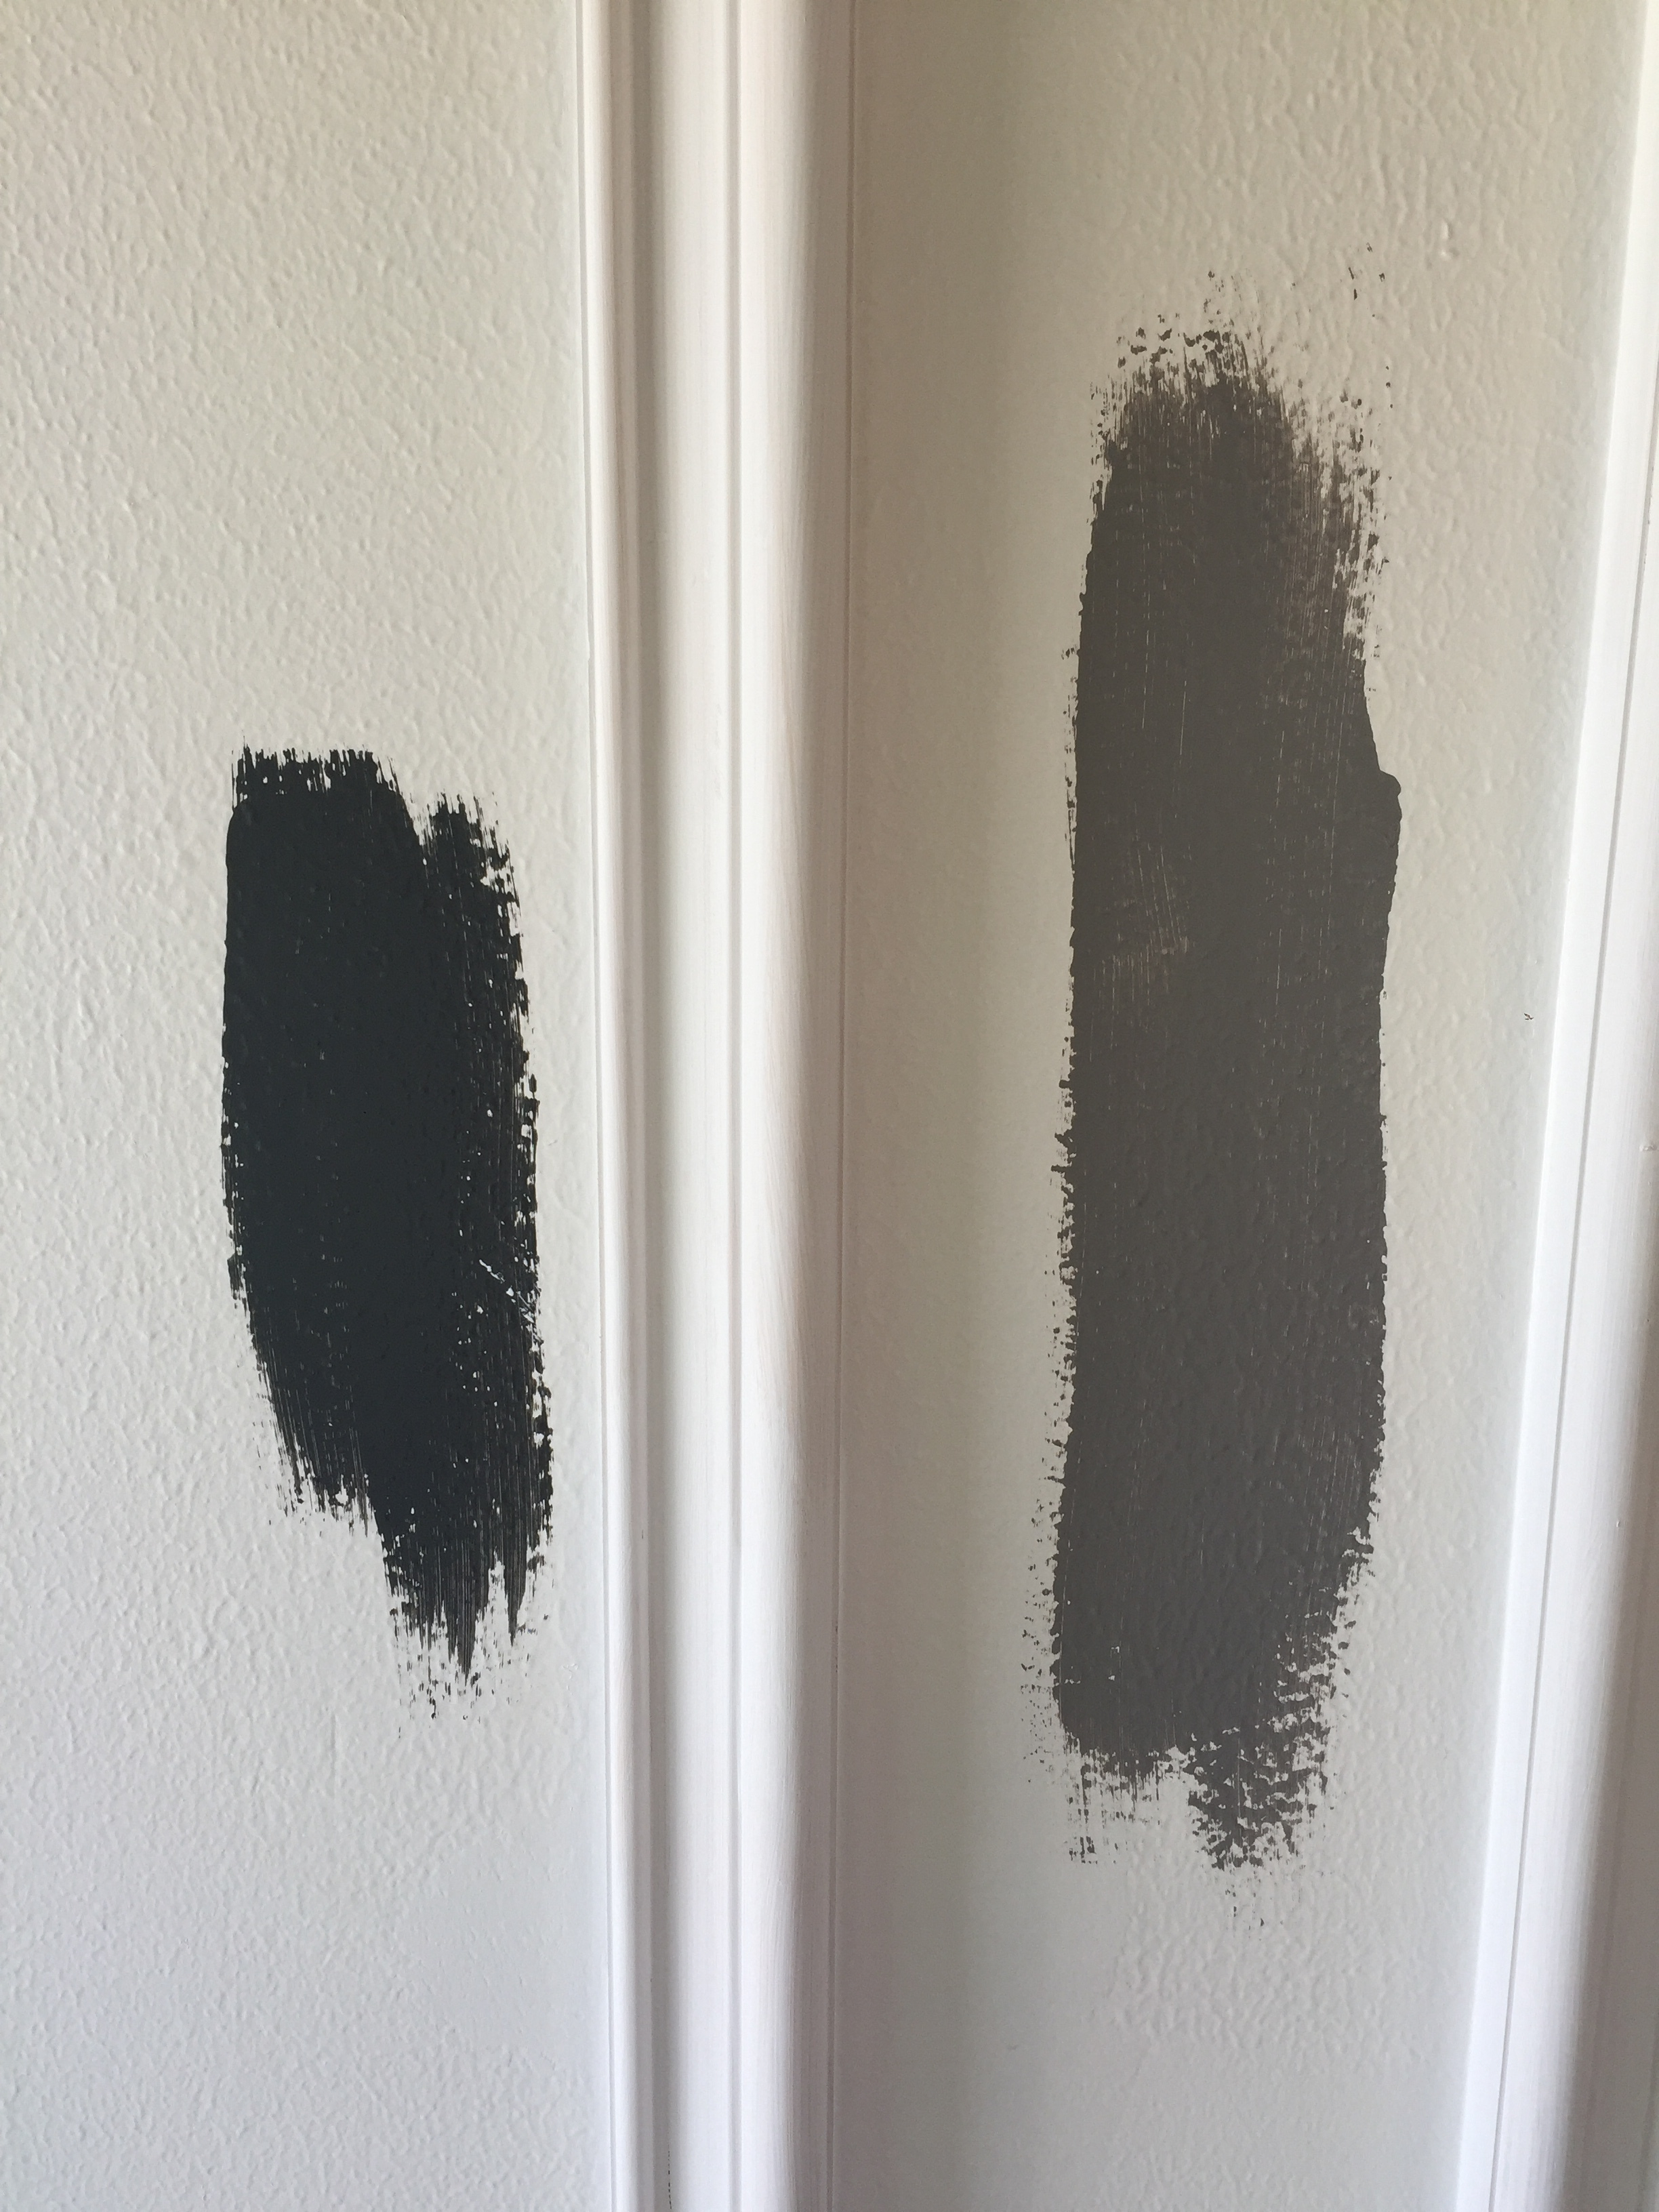 Choosing Paint is Difficult! Be sure to test colors at different times int he day to see how the Sun Light affects the Hue.